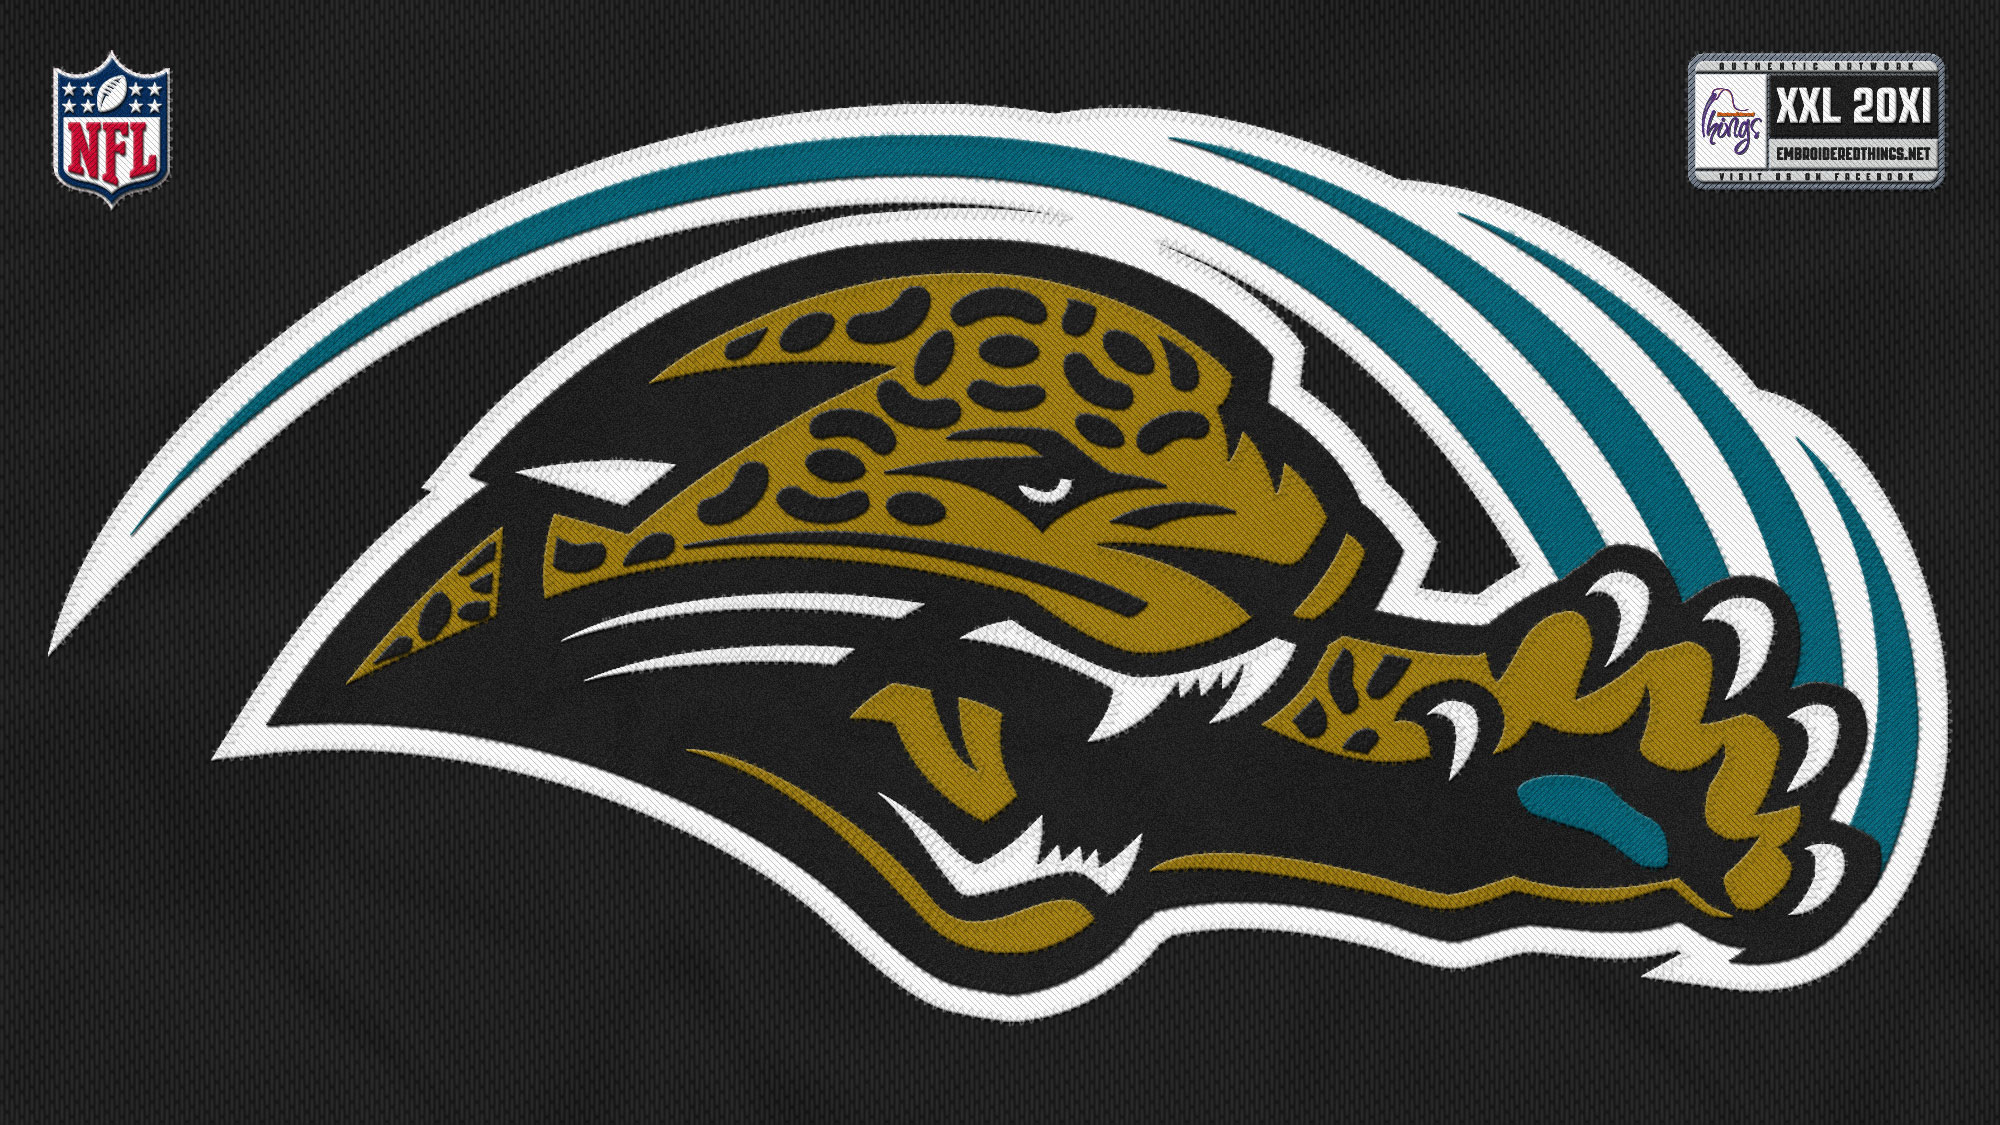 JACKSONVILLE JAGUARS nfl football f wallpaper backgroundJacksonville Jaguars Wallpaper 2013